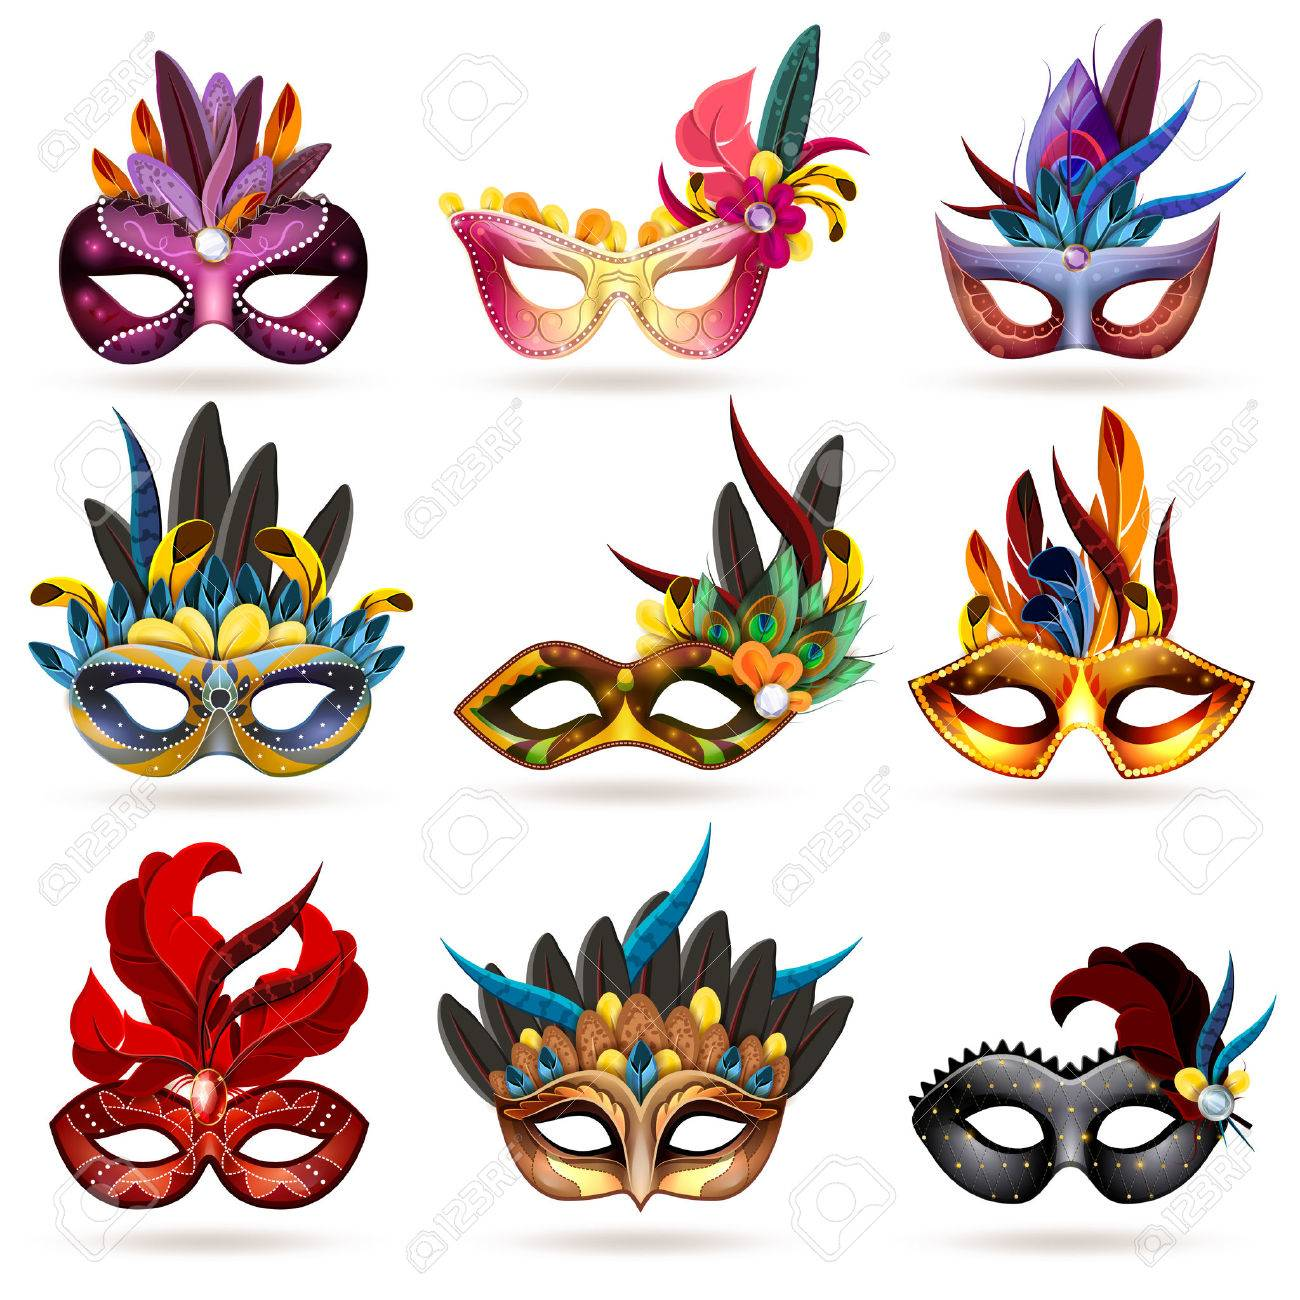 Mask realistic icons set with feathers and jewels isolated vector illustration - 51757197